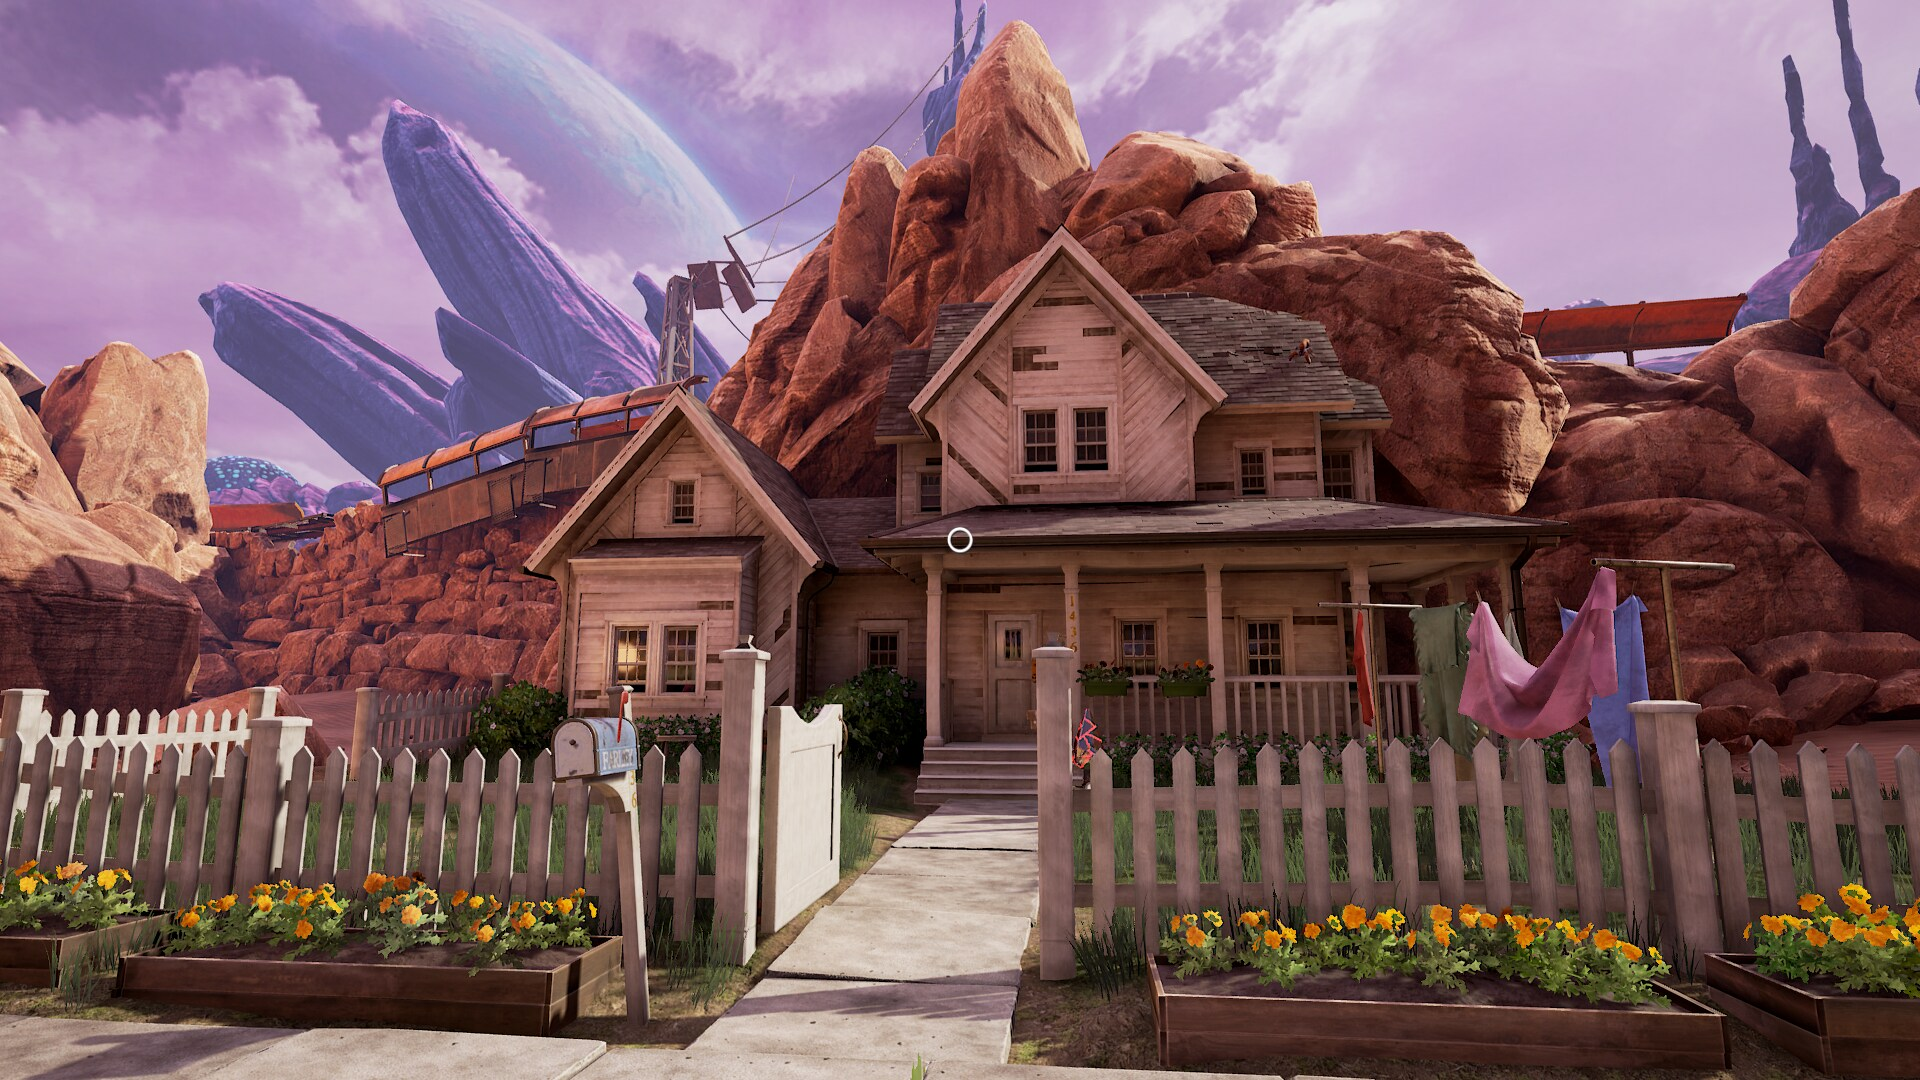 obduction94.jpg